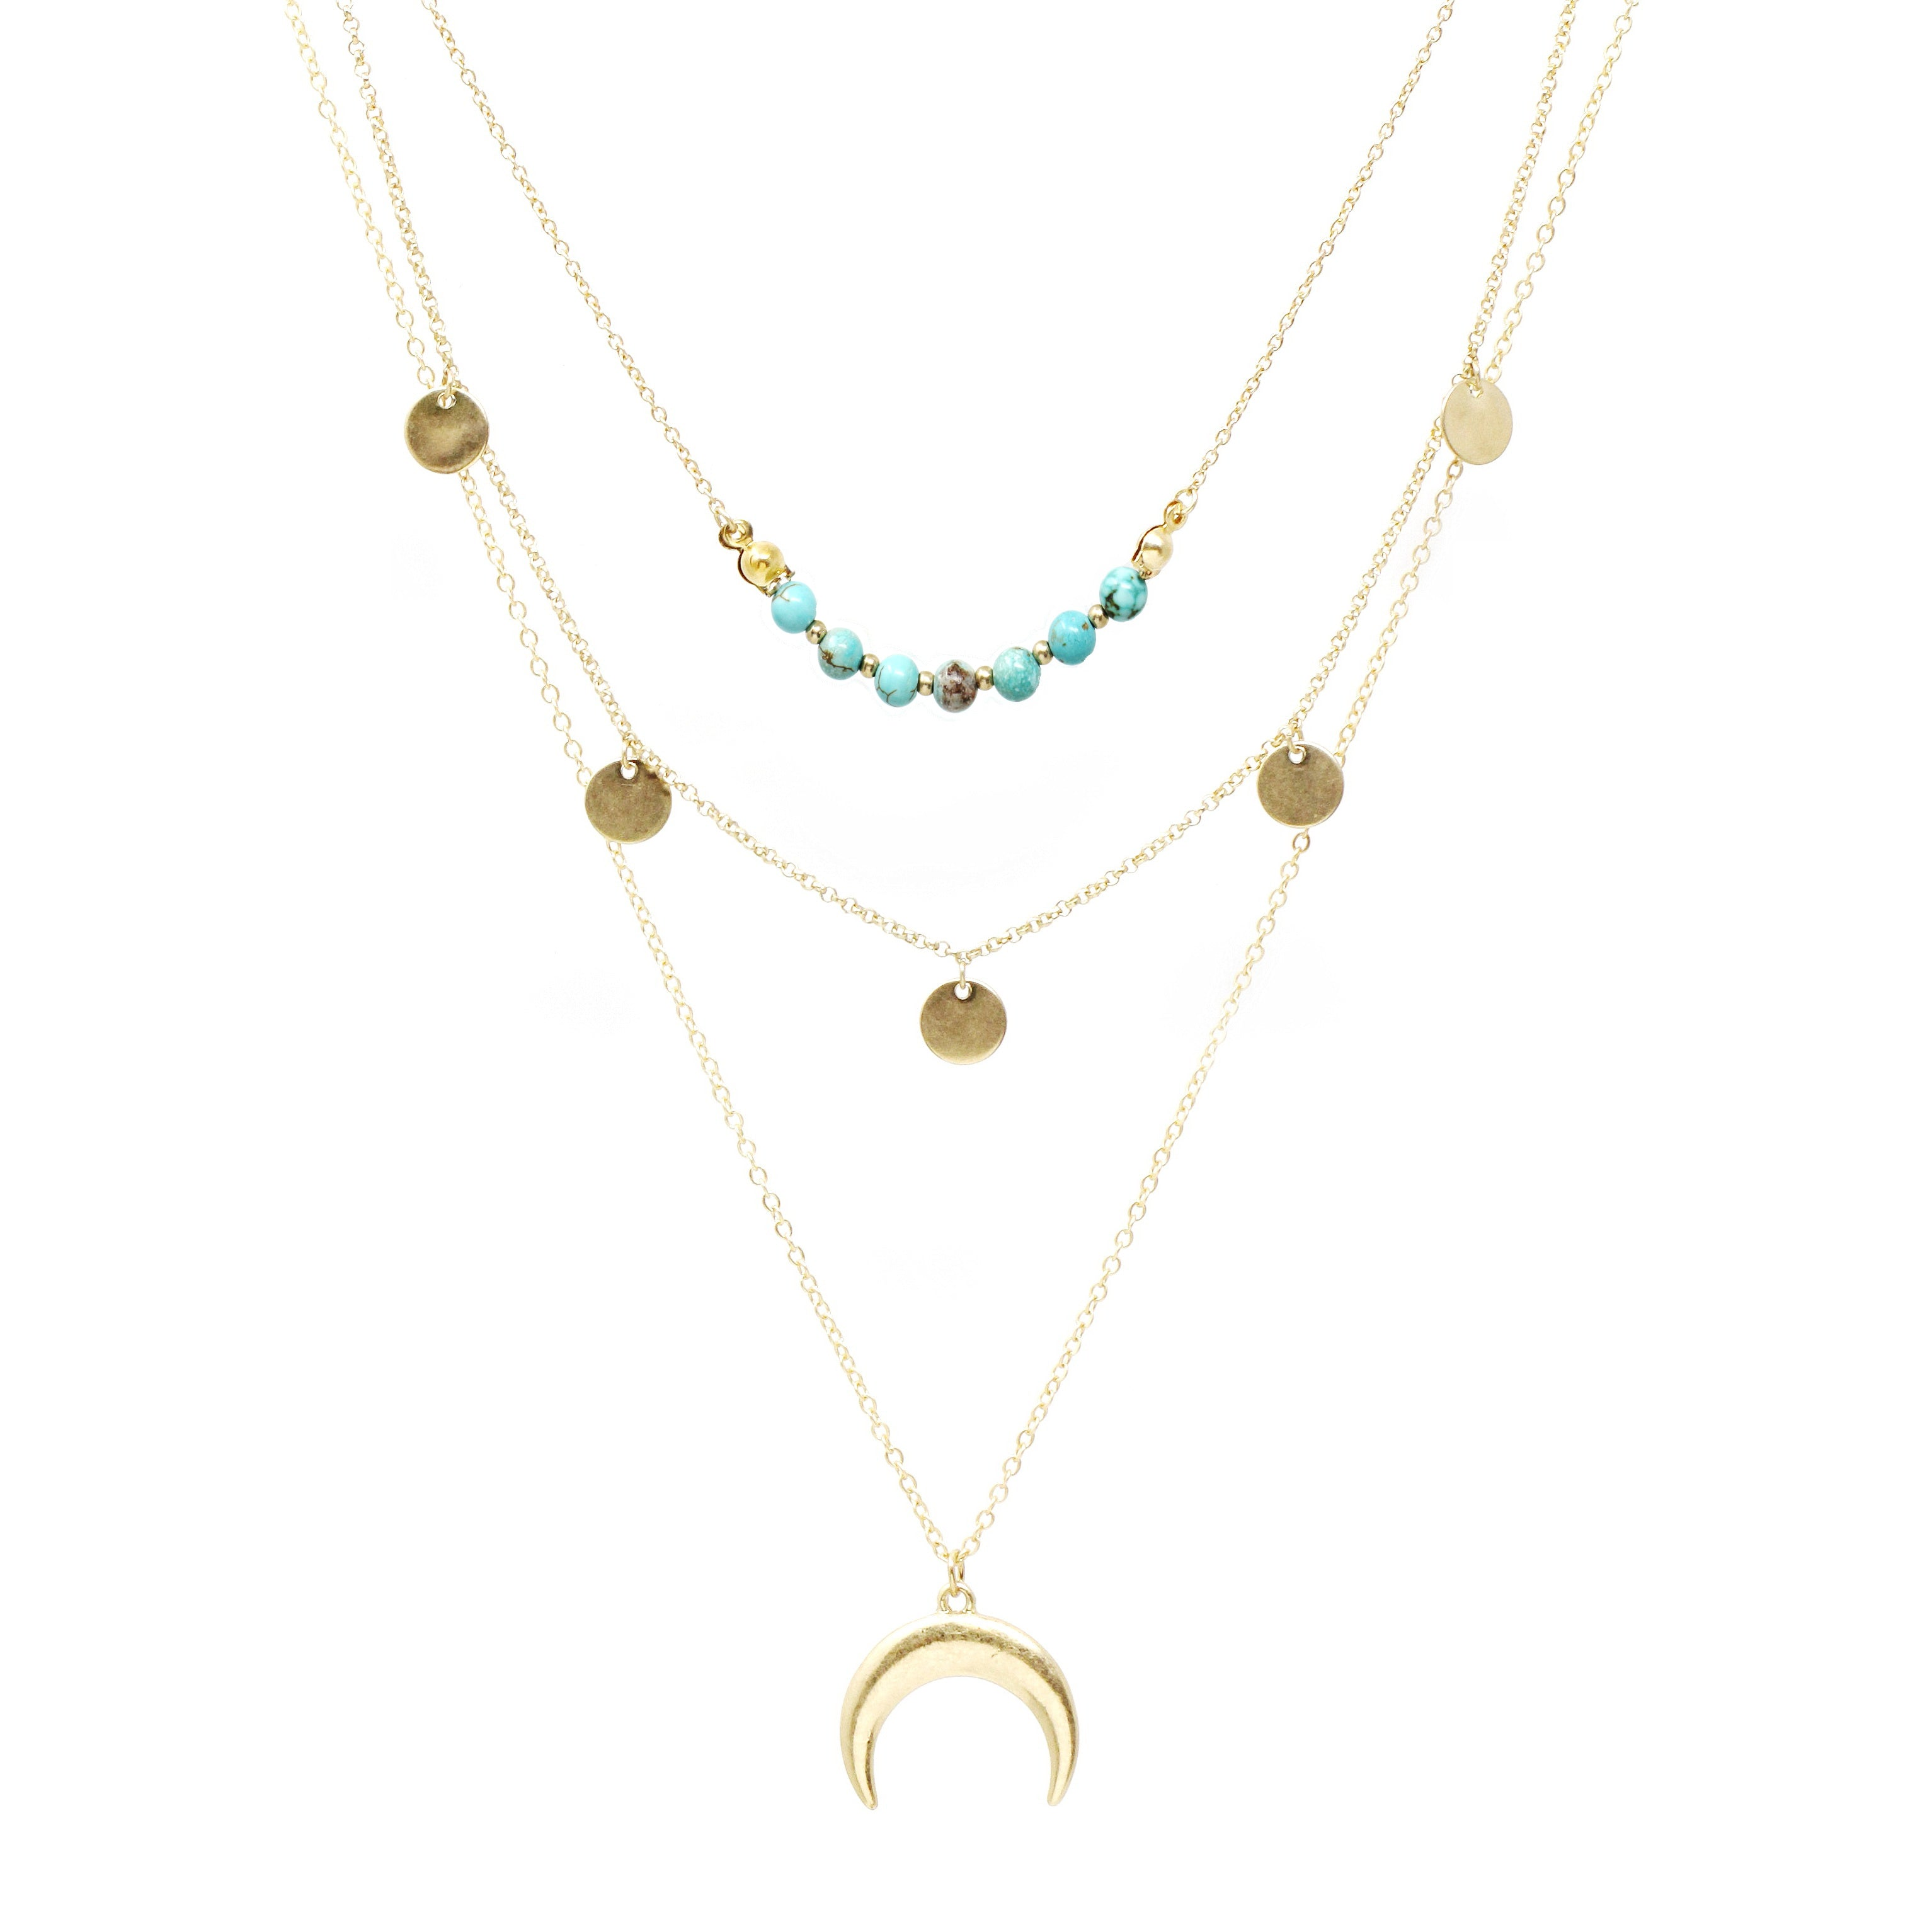 Inverted Crescent Moon Semi Precious Stone Layered Necklace